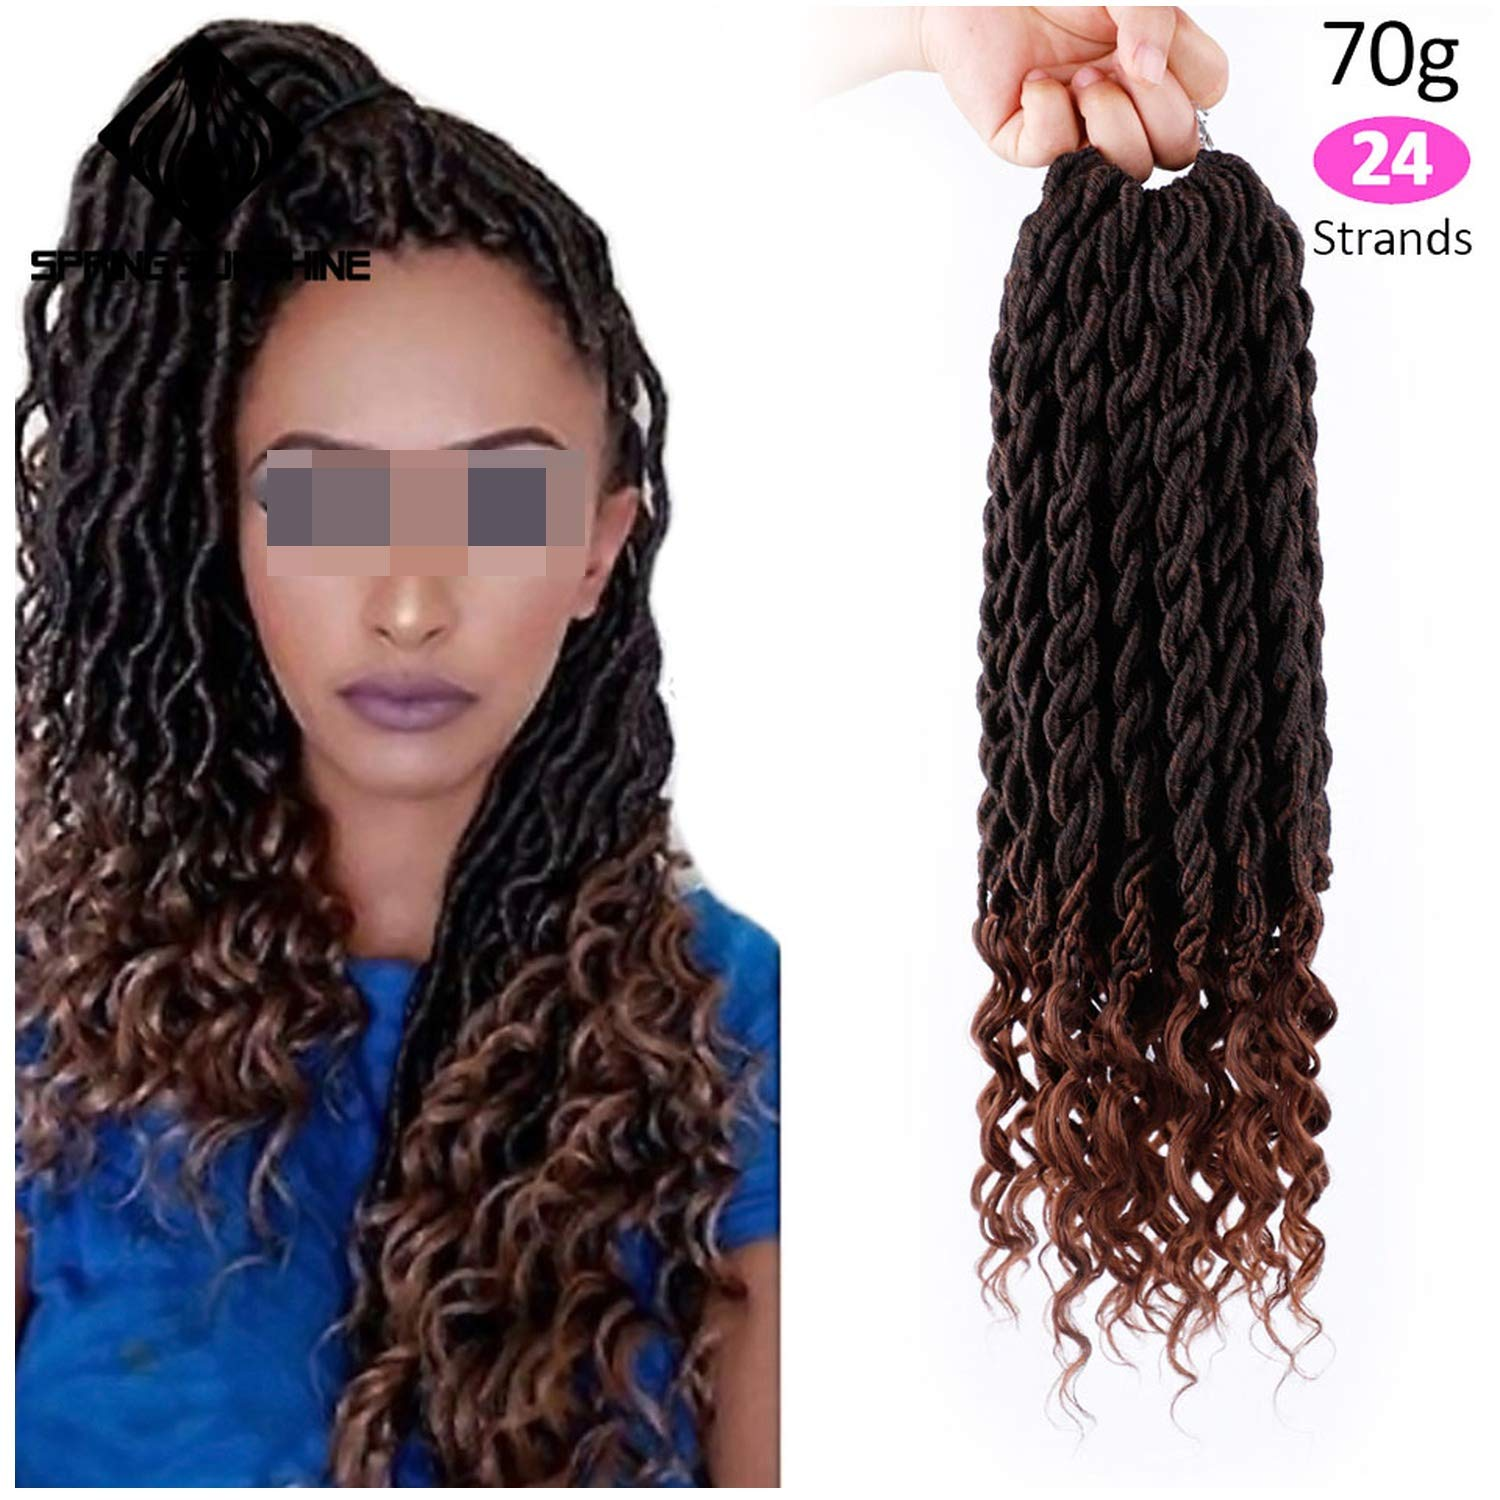 Amazoncom Crochet Hair Extensions Bohemian Faux Curly Crochet